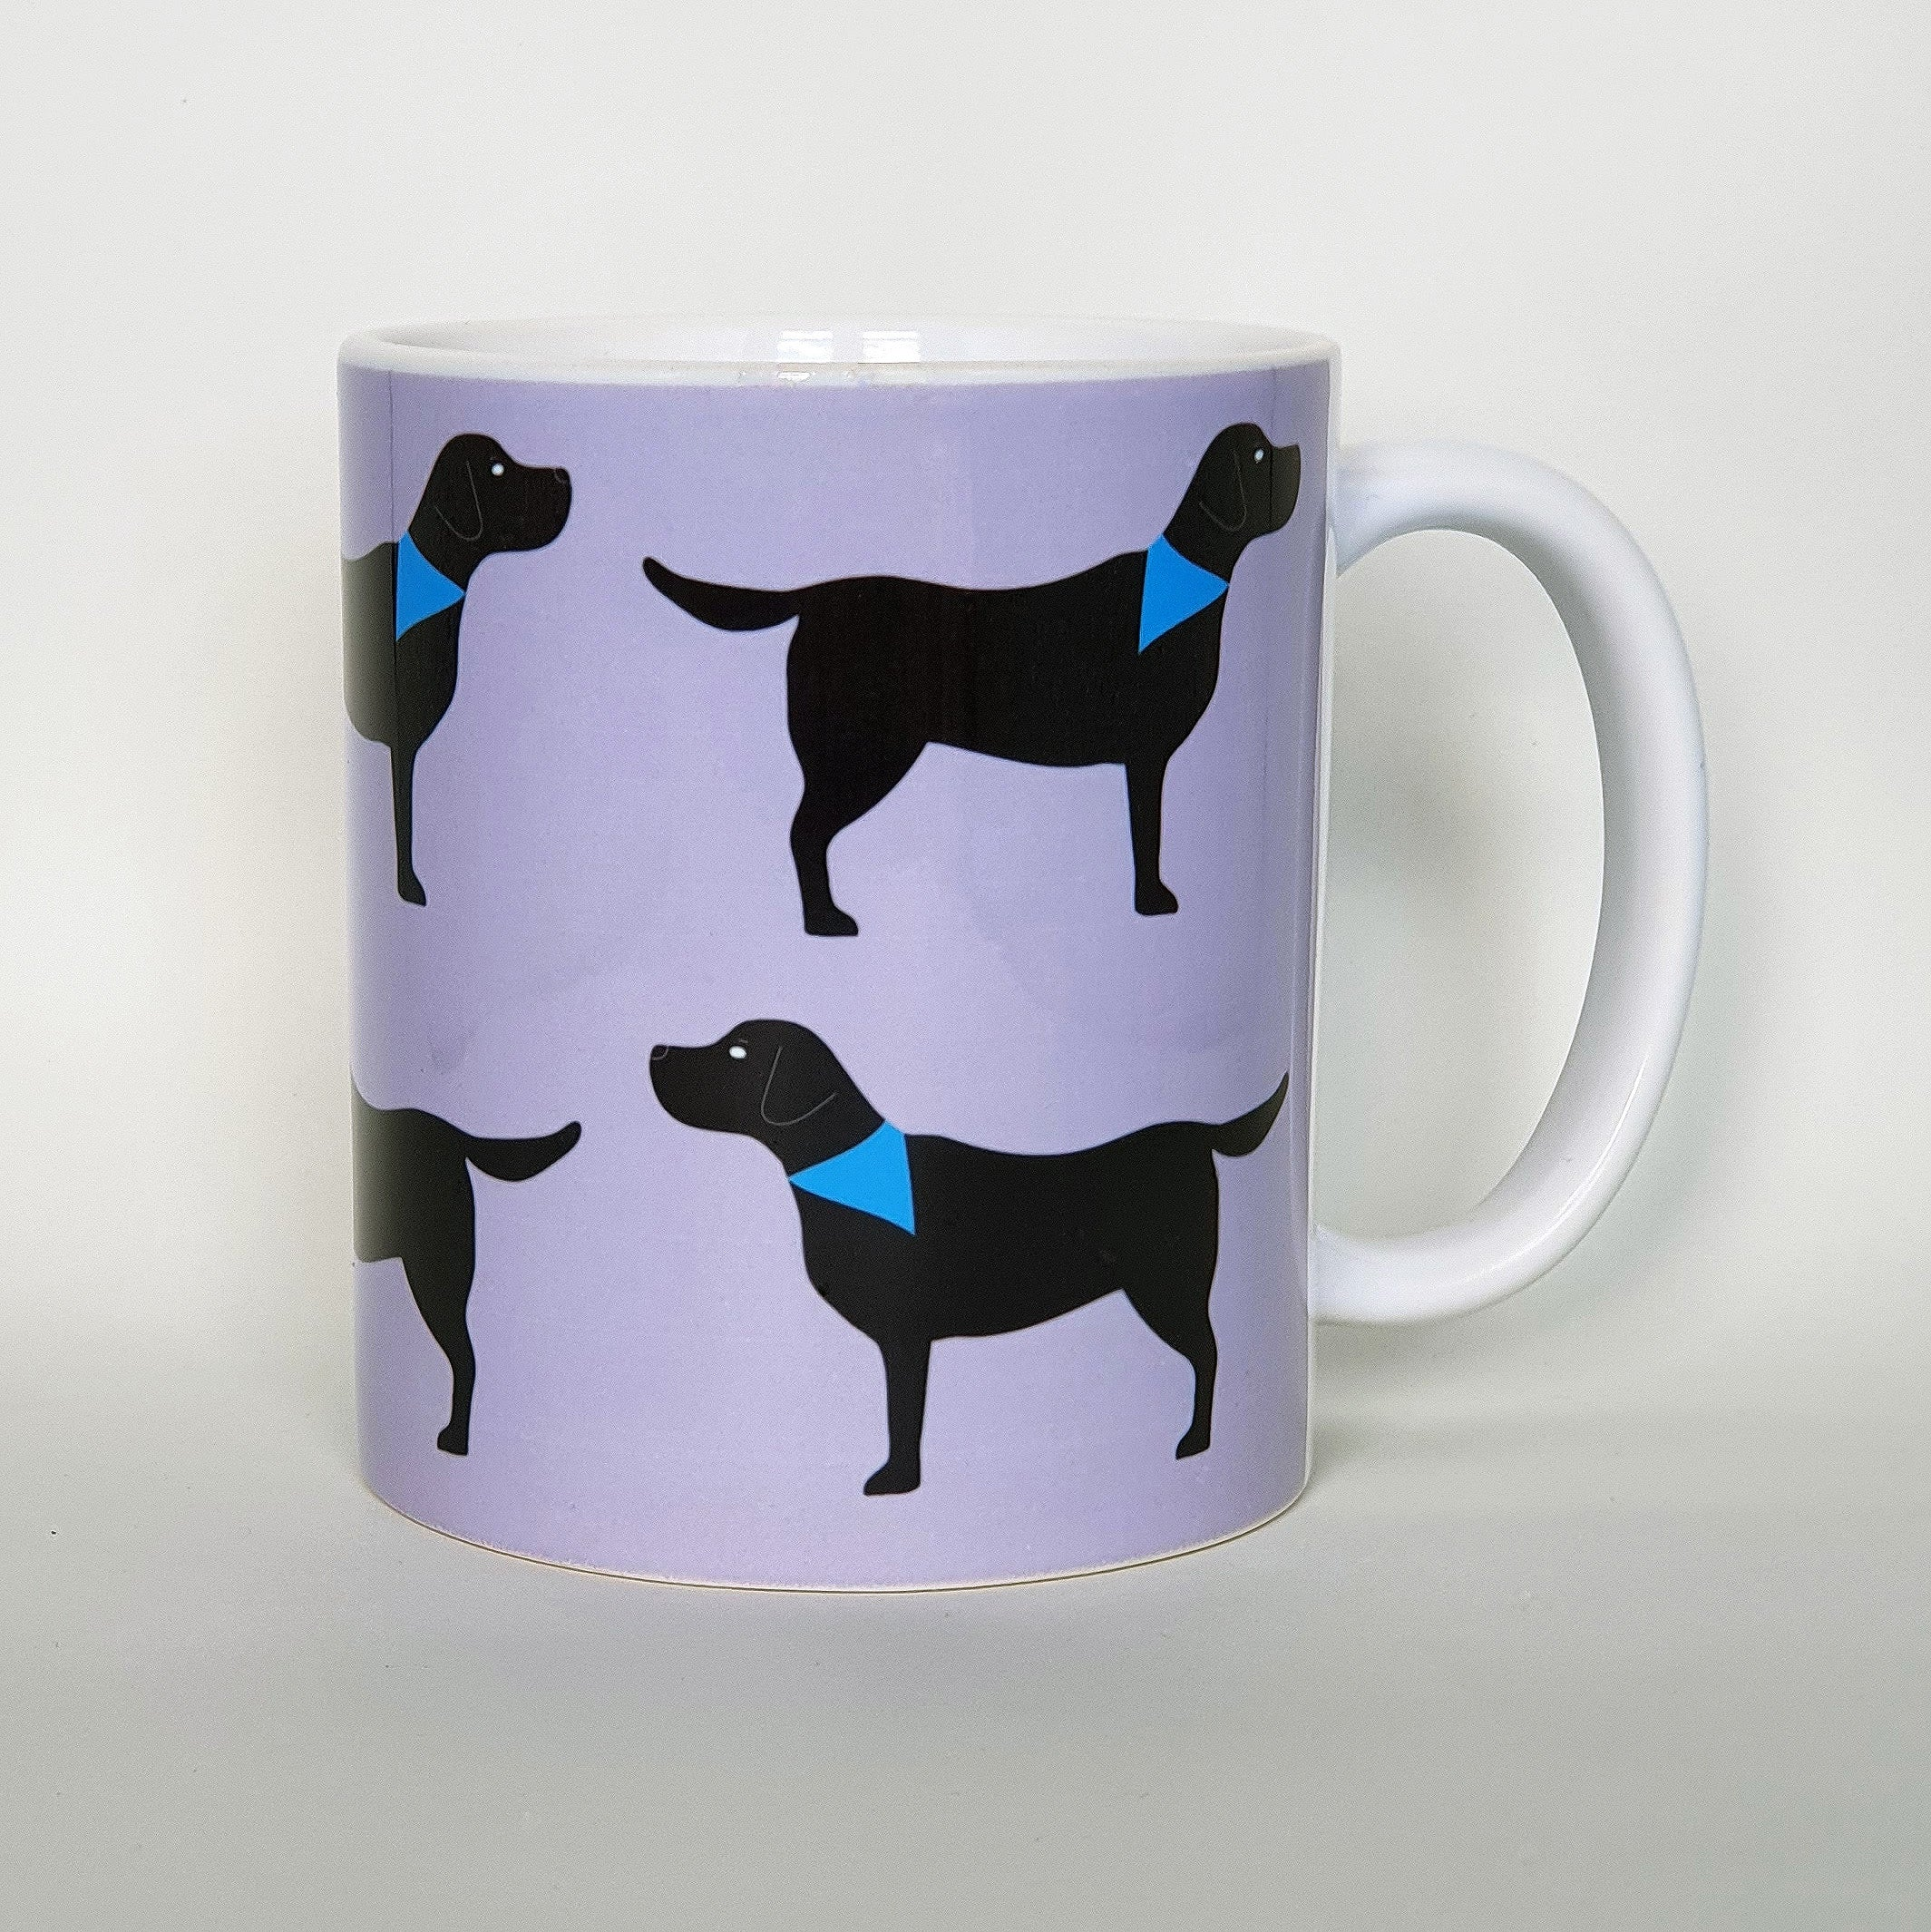 Black Labrador earthenware mug